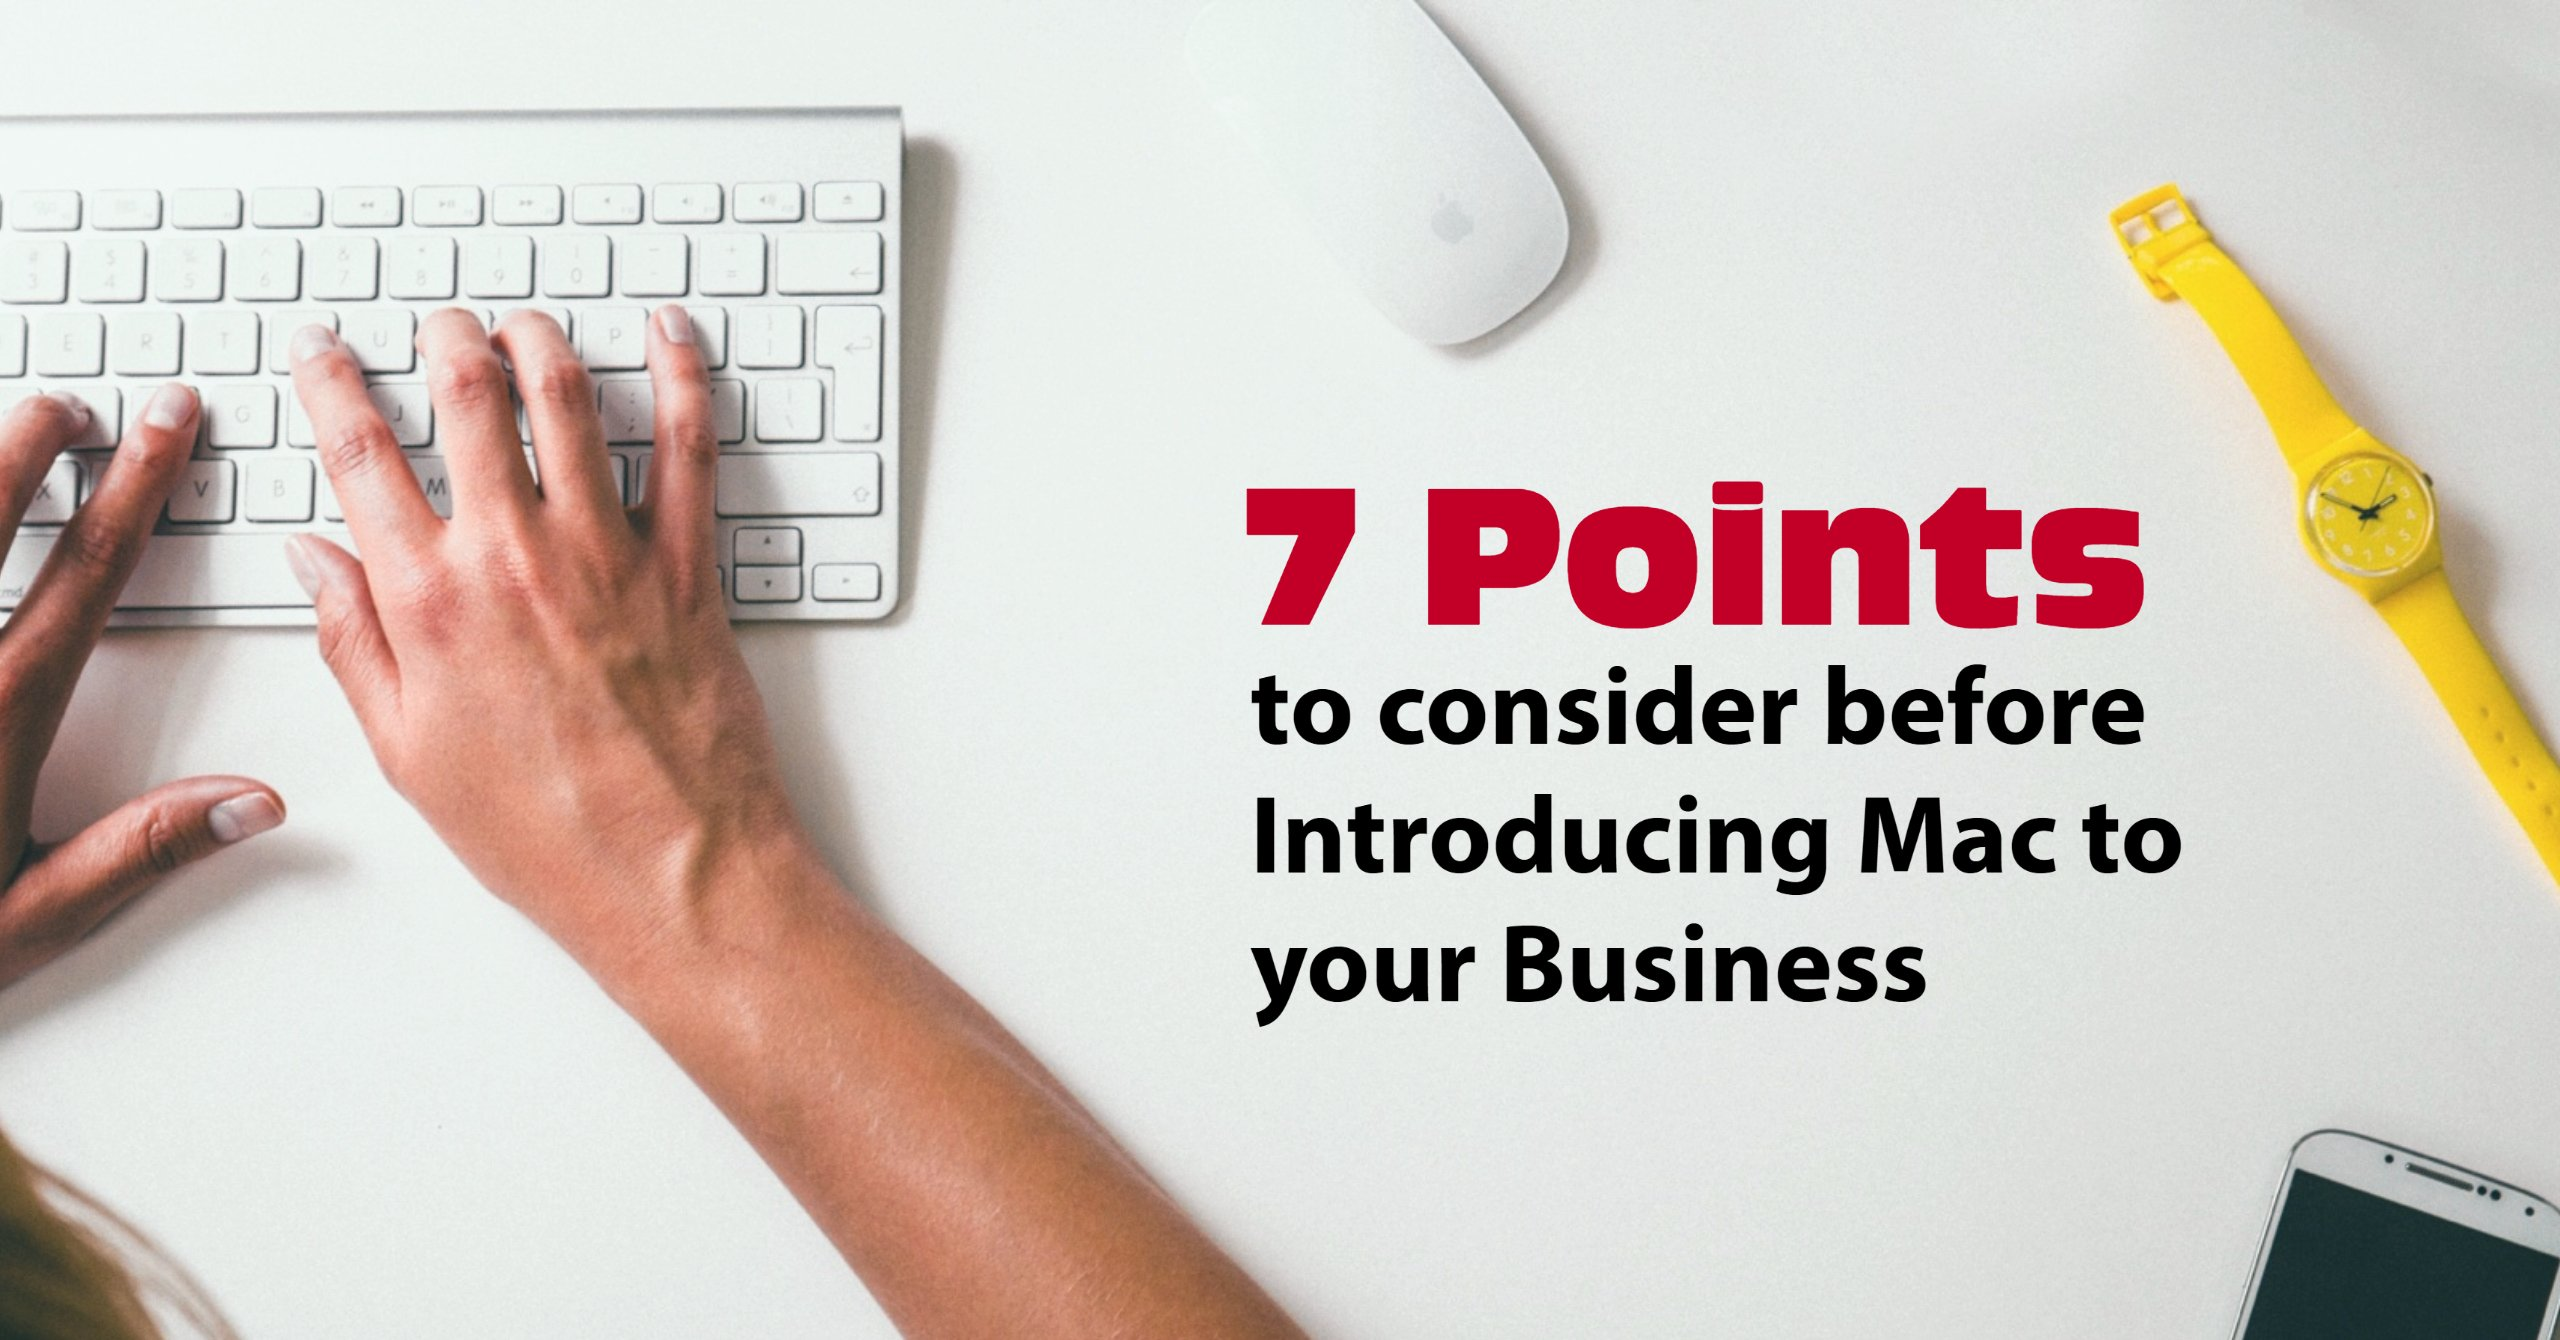 7 Points to consider before Introducing Mac to your Business